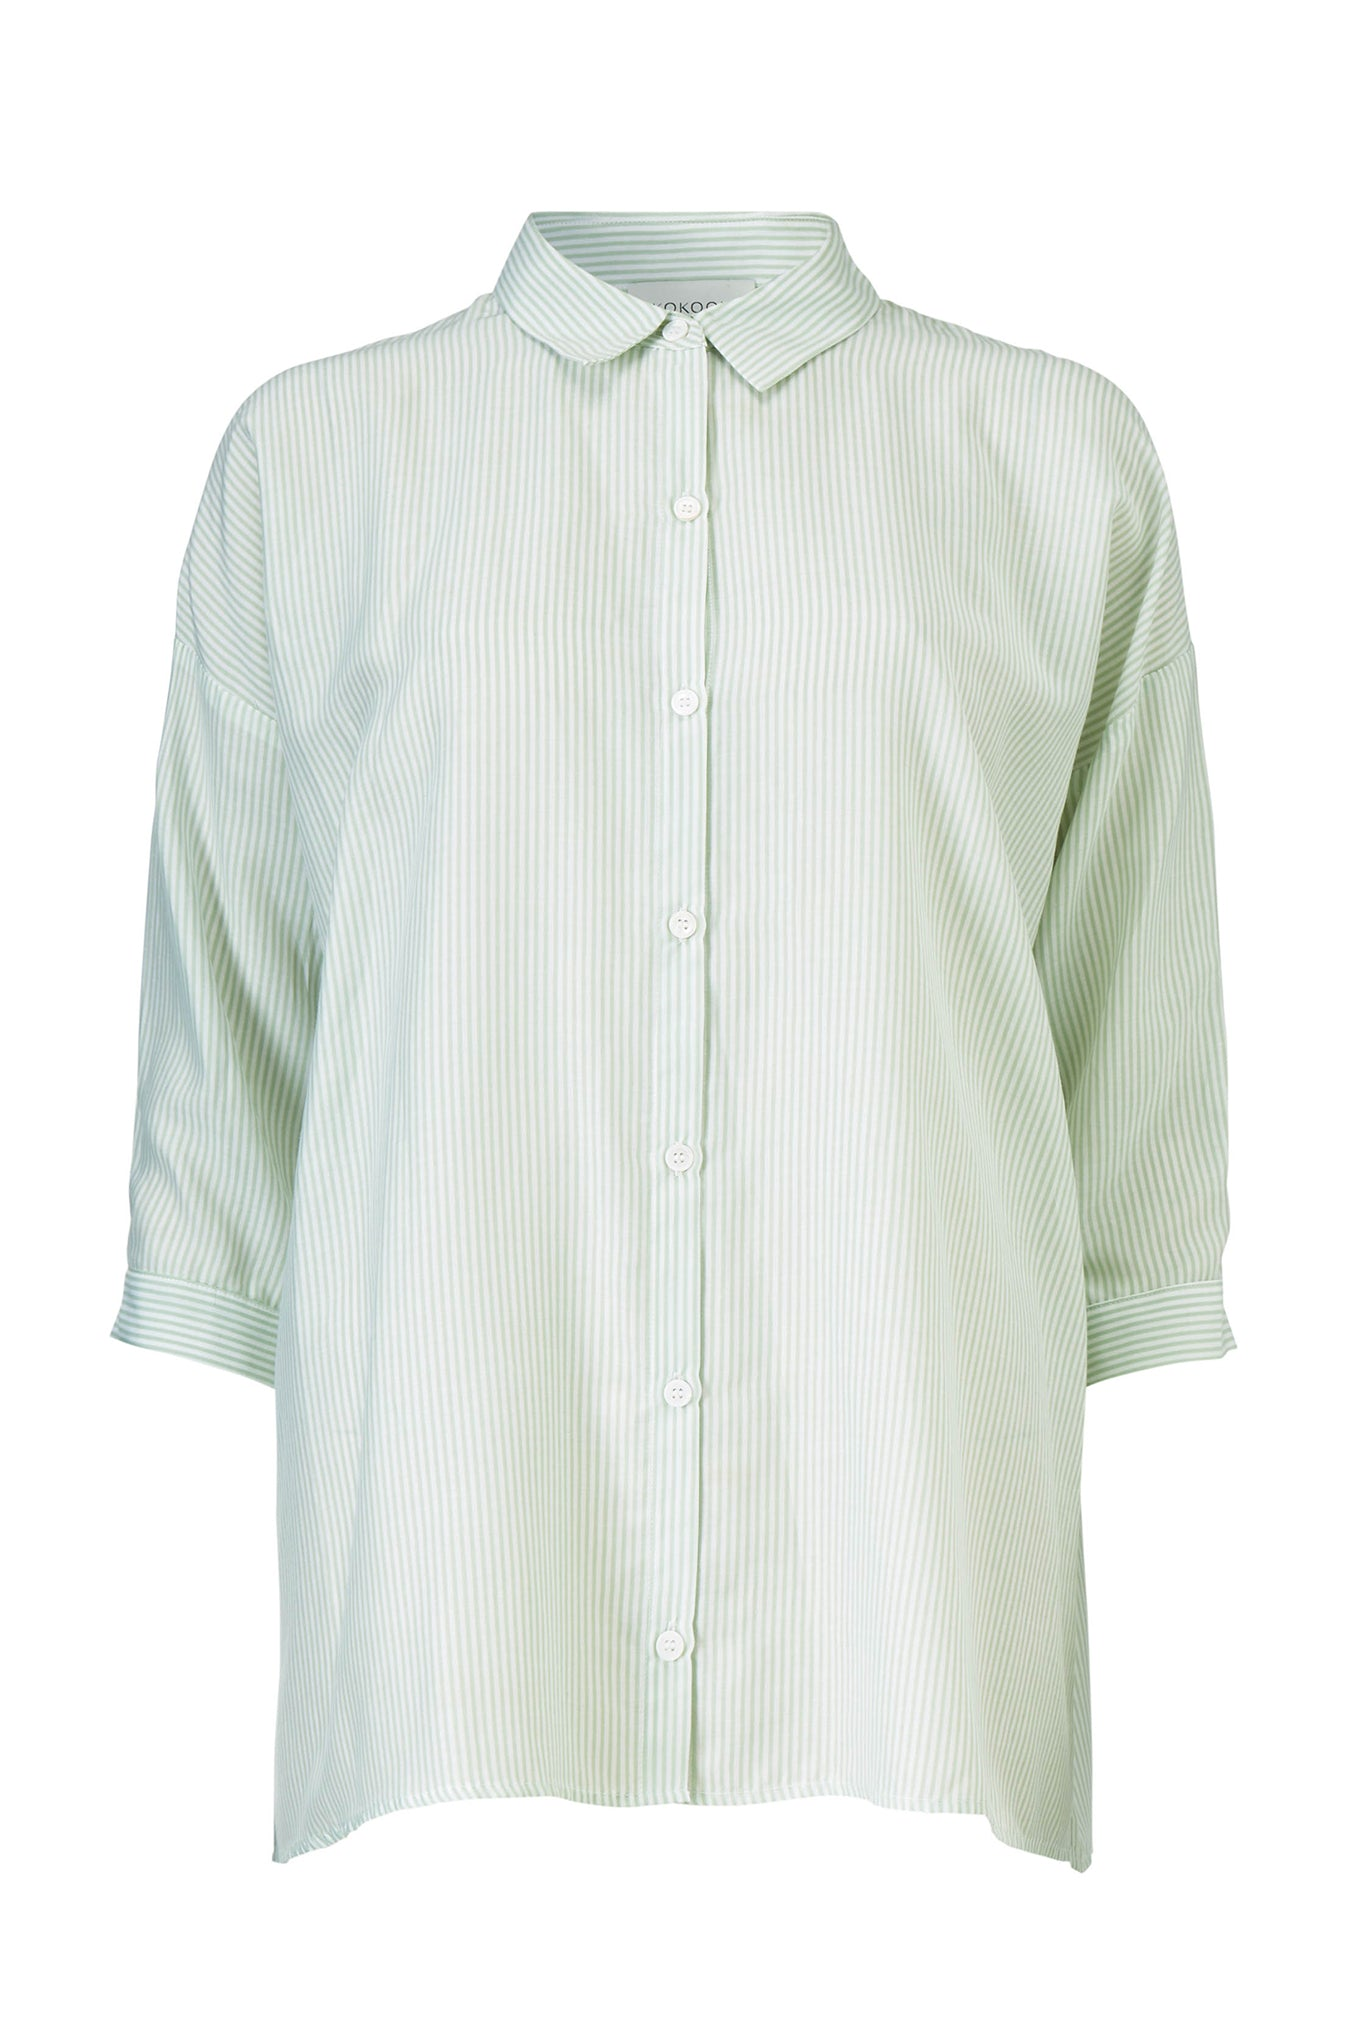 BIANCA STRAIGHT SHIRT - MINT STRIPE - SILK/COTTON